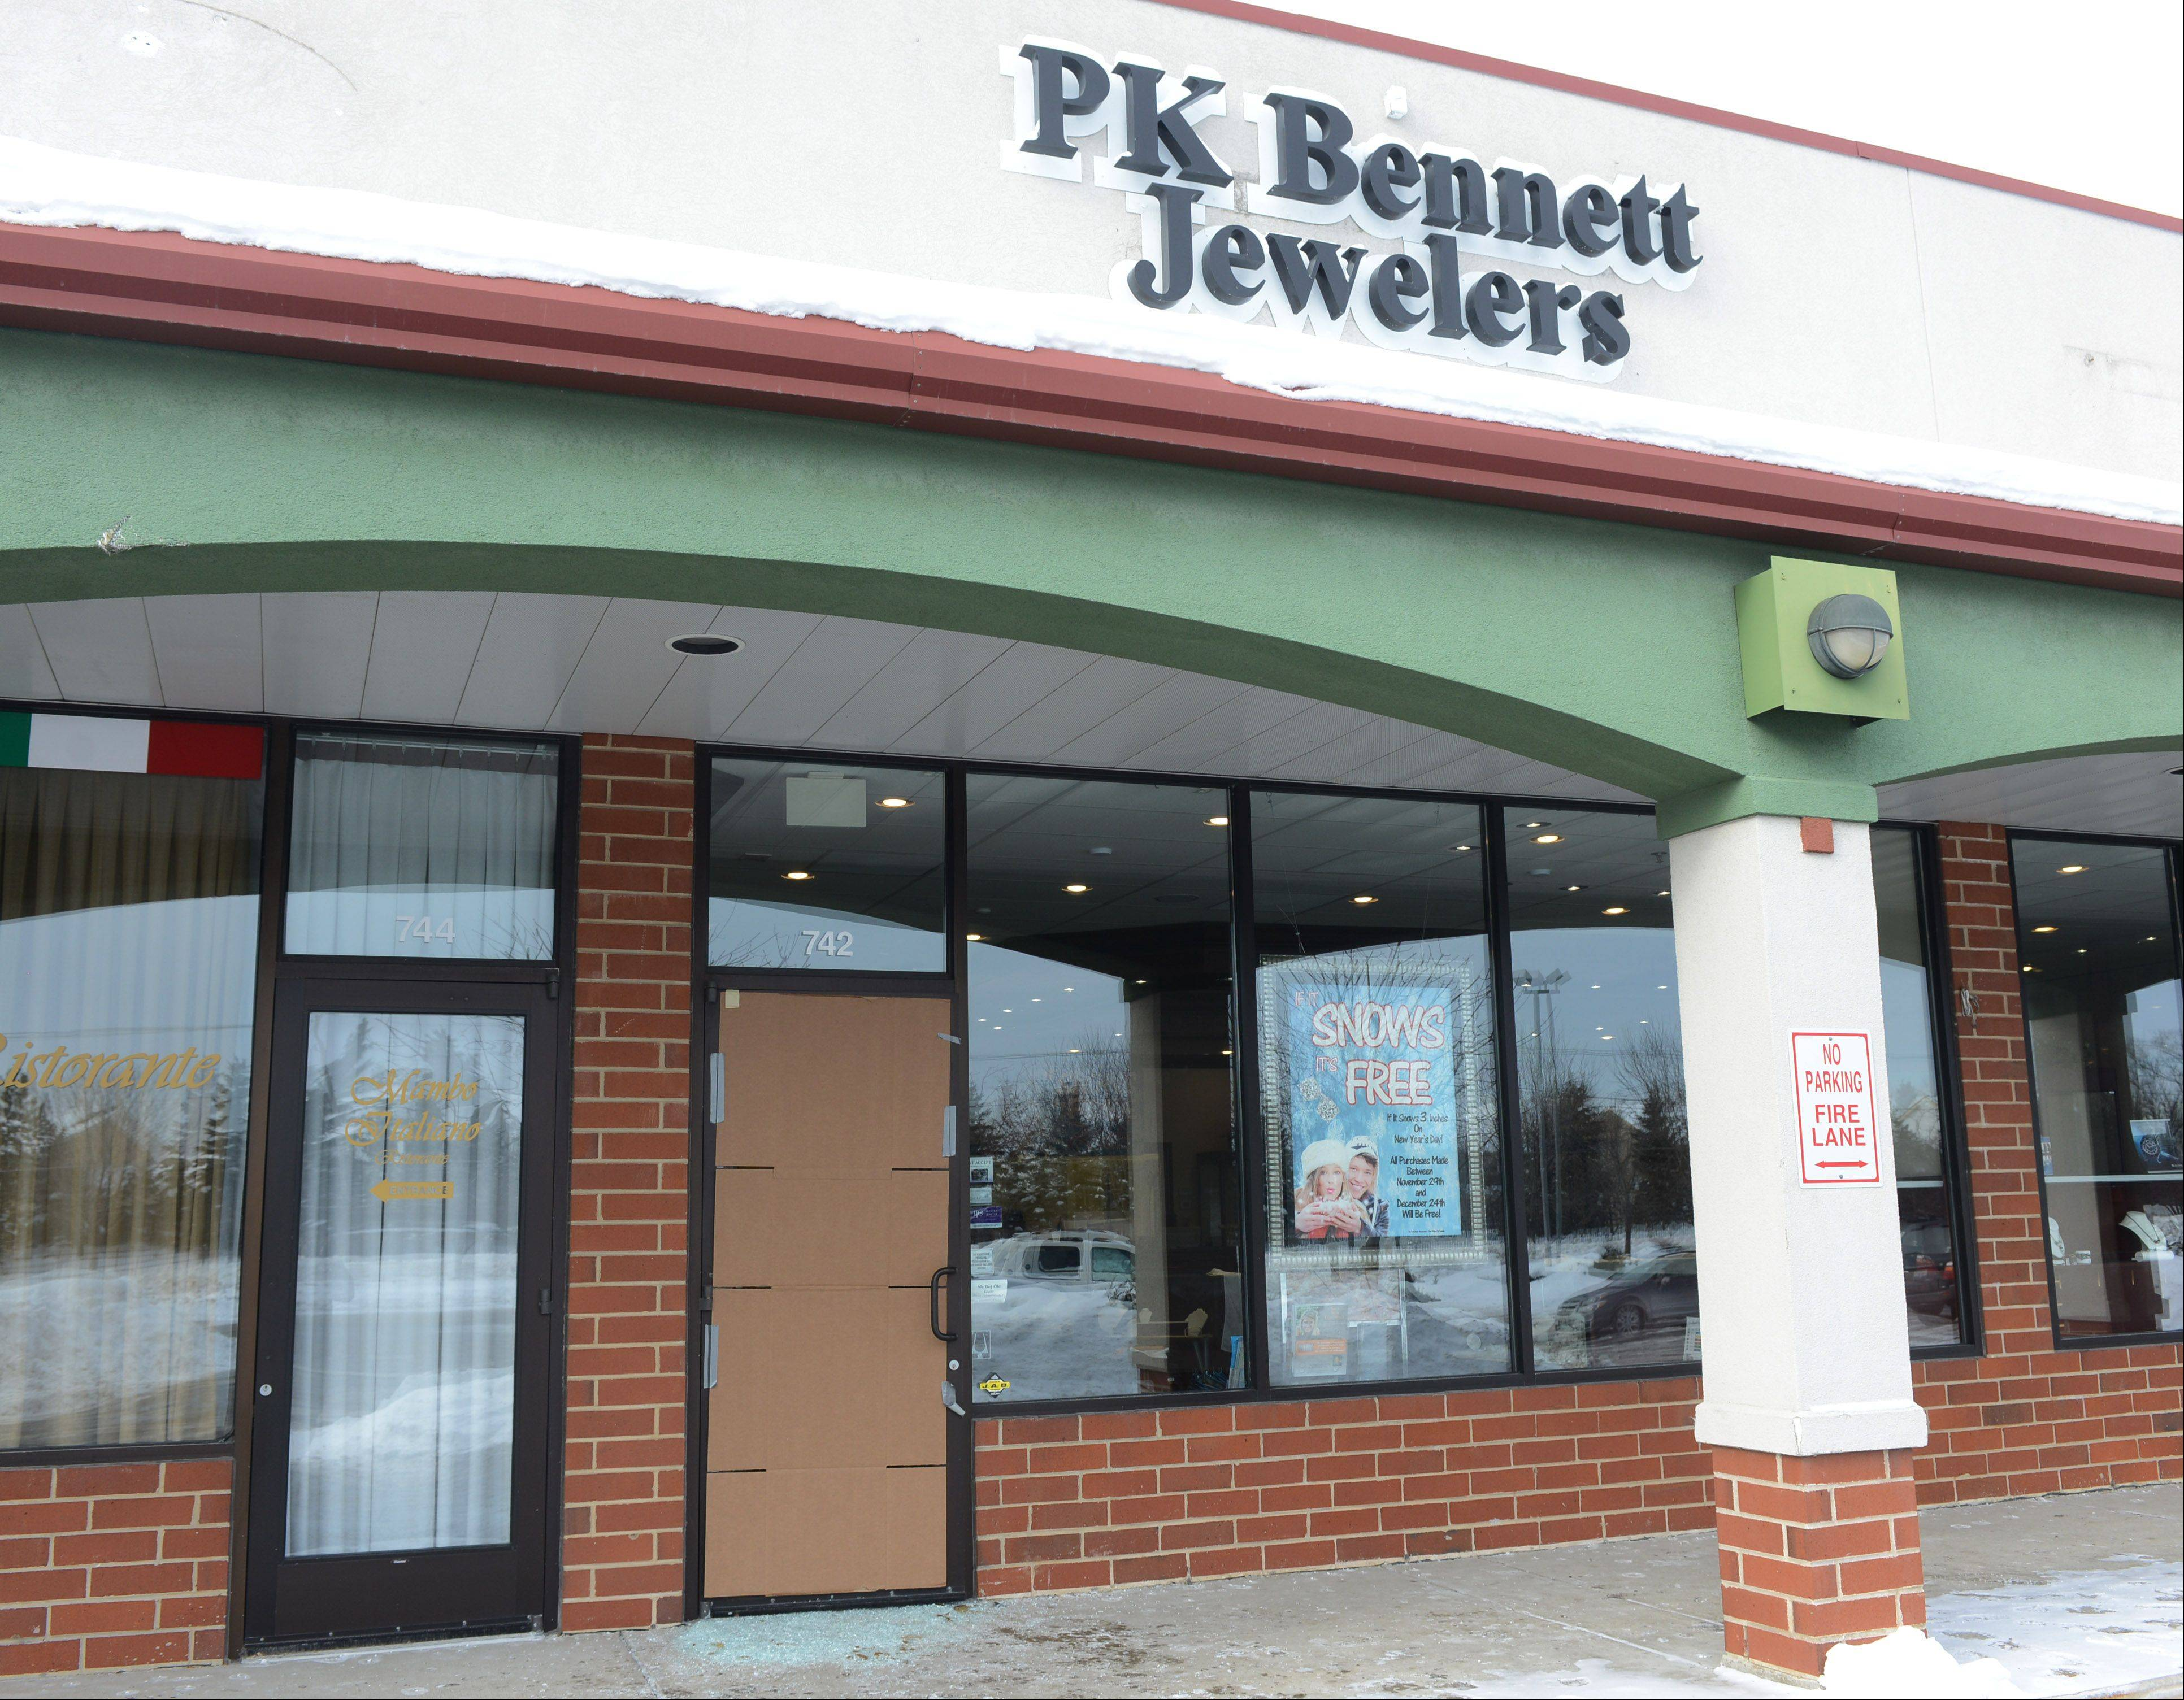 The front door to P.K. Bennett Jewelers was smashed early Tuesday by burglars morning who stole items from inside the Mundelein store. The store made headlines in recent days because of a New Year's Day snow promotion.